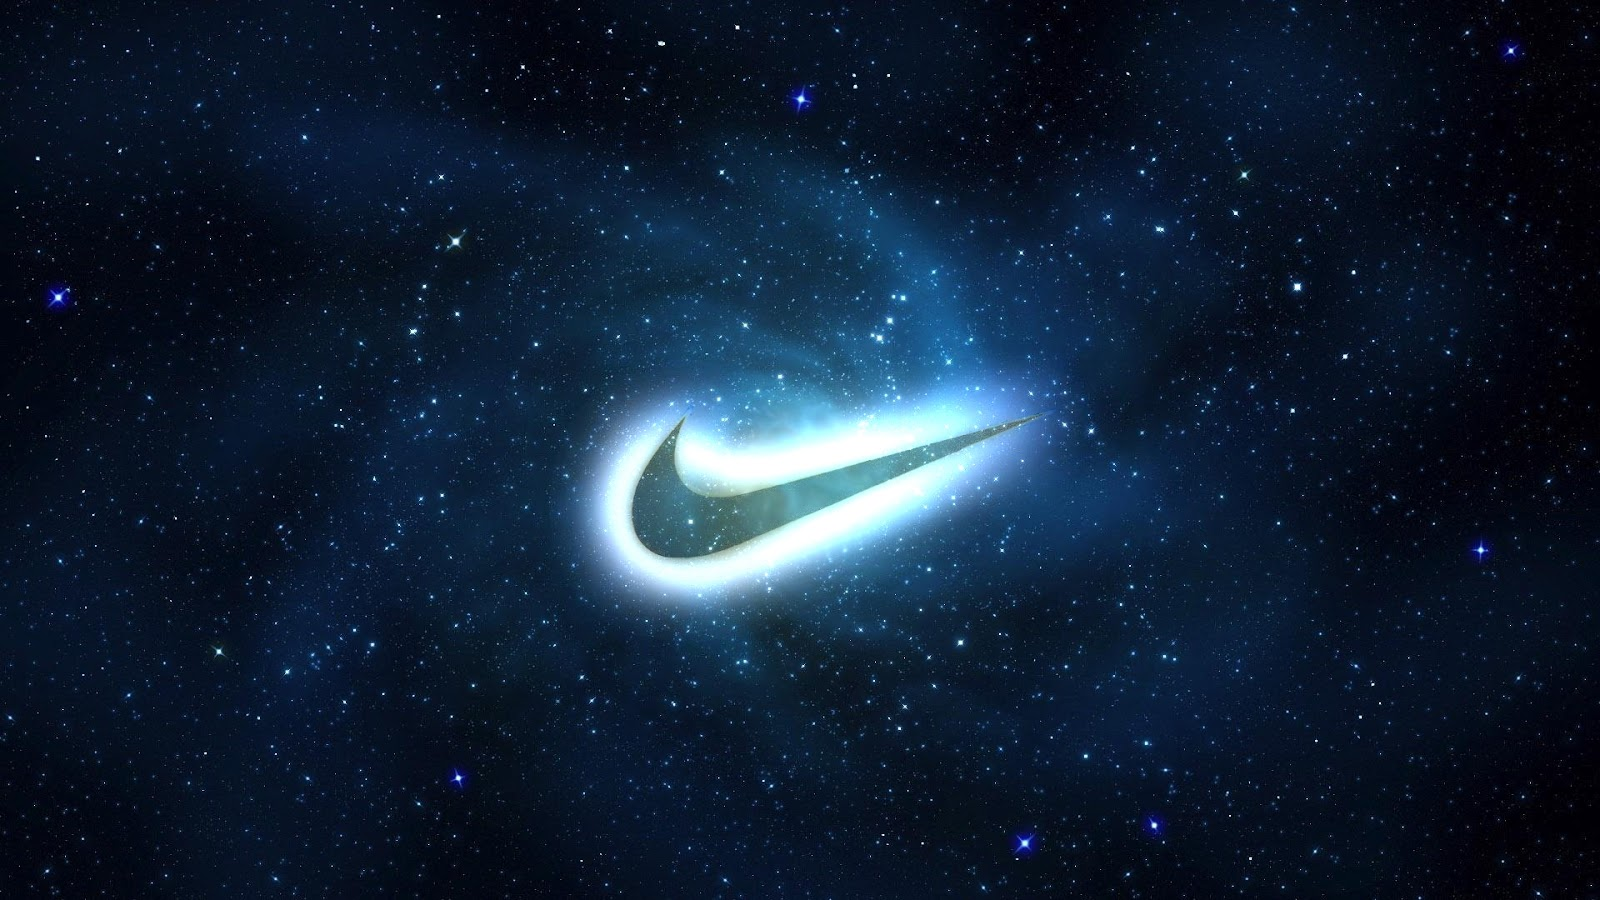 wallpaper nike signs - photo #31